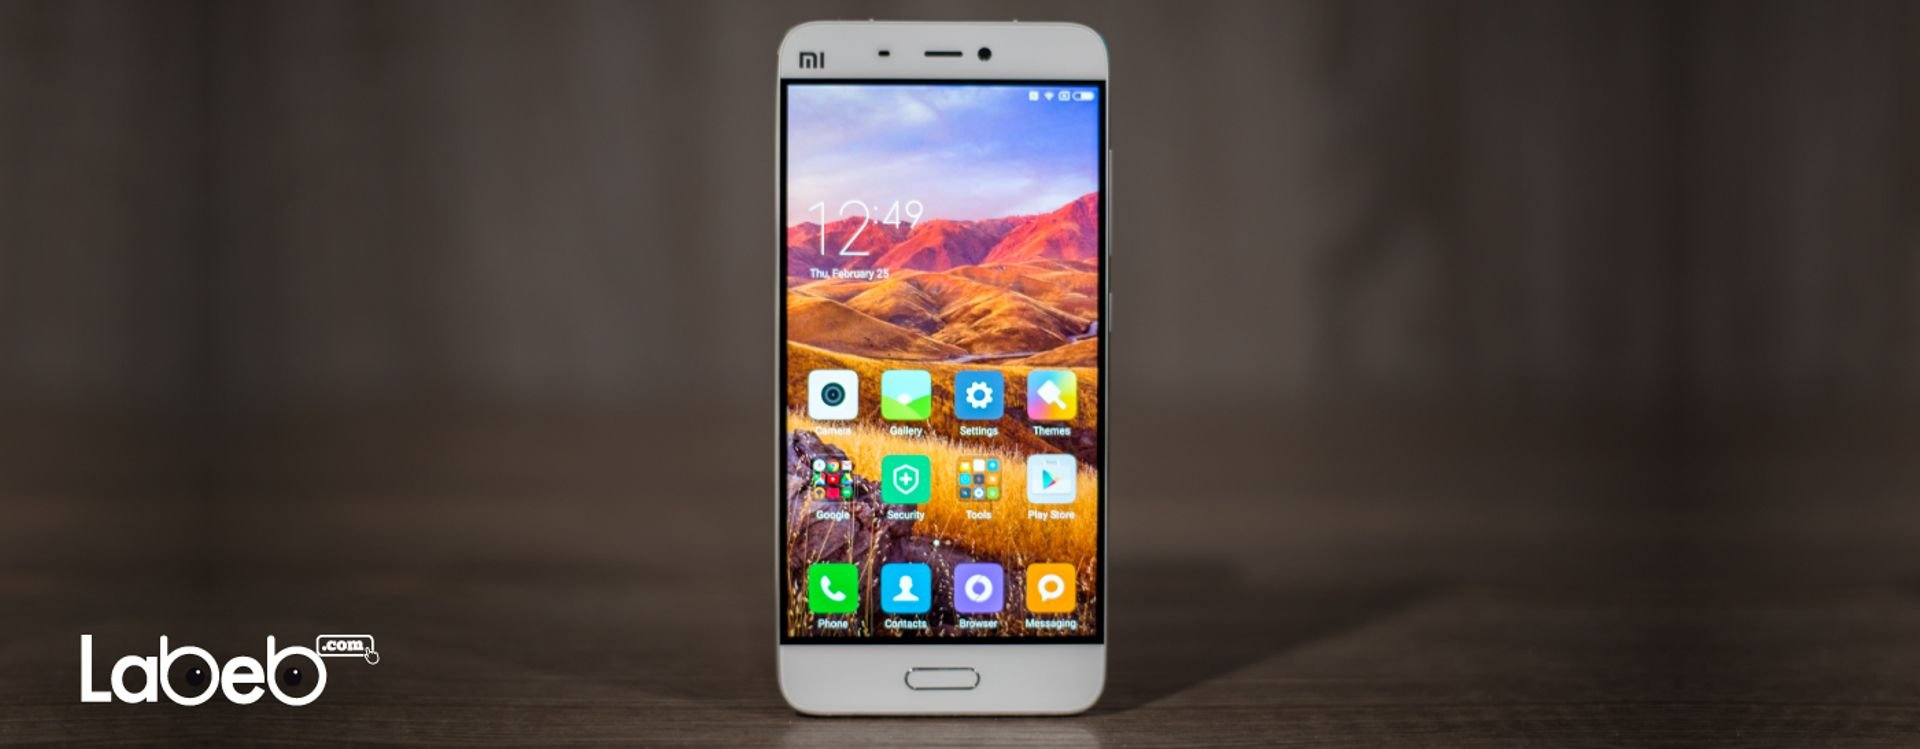 Tech Experts Believe that Xiaomi Mi5 will compete with Samsung and LG as it enters the European Markets.